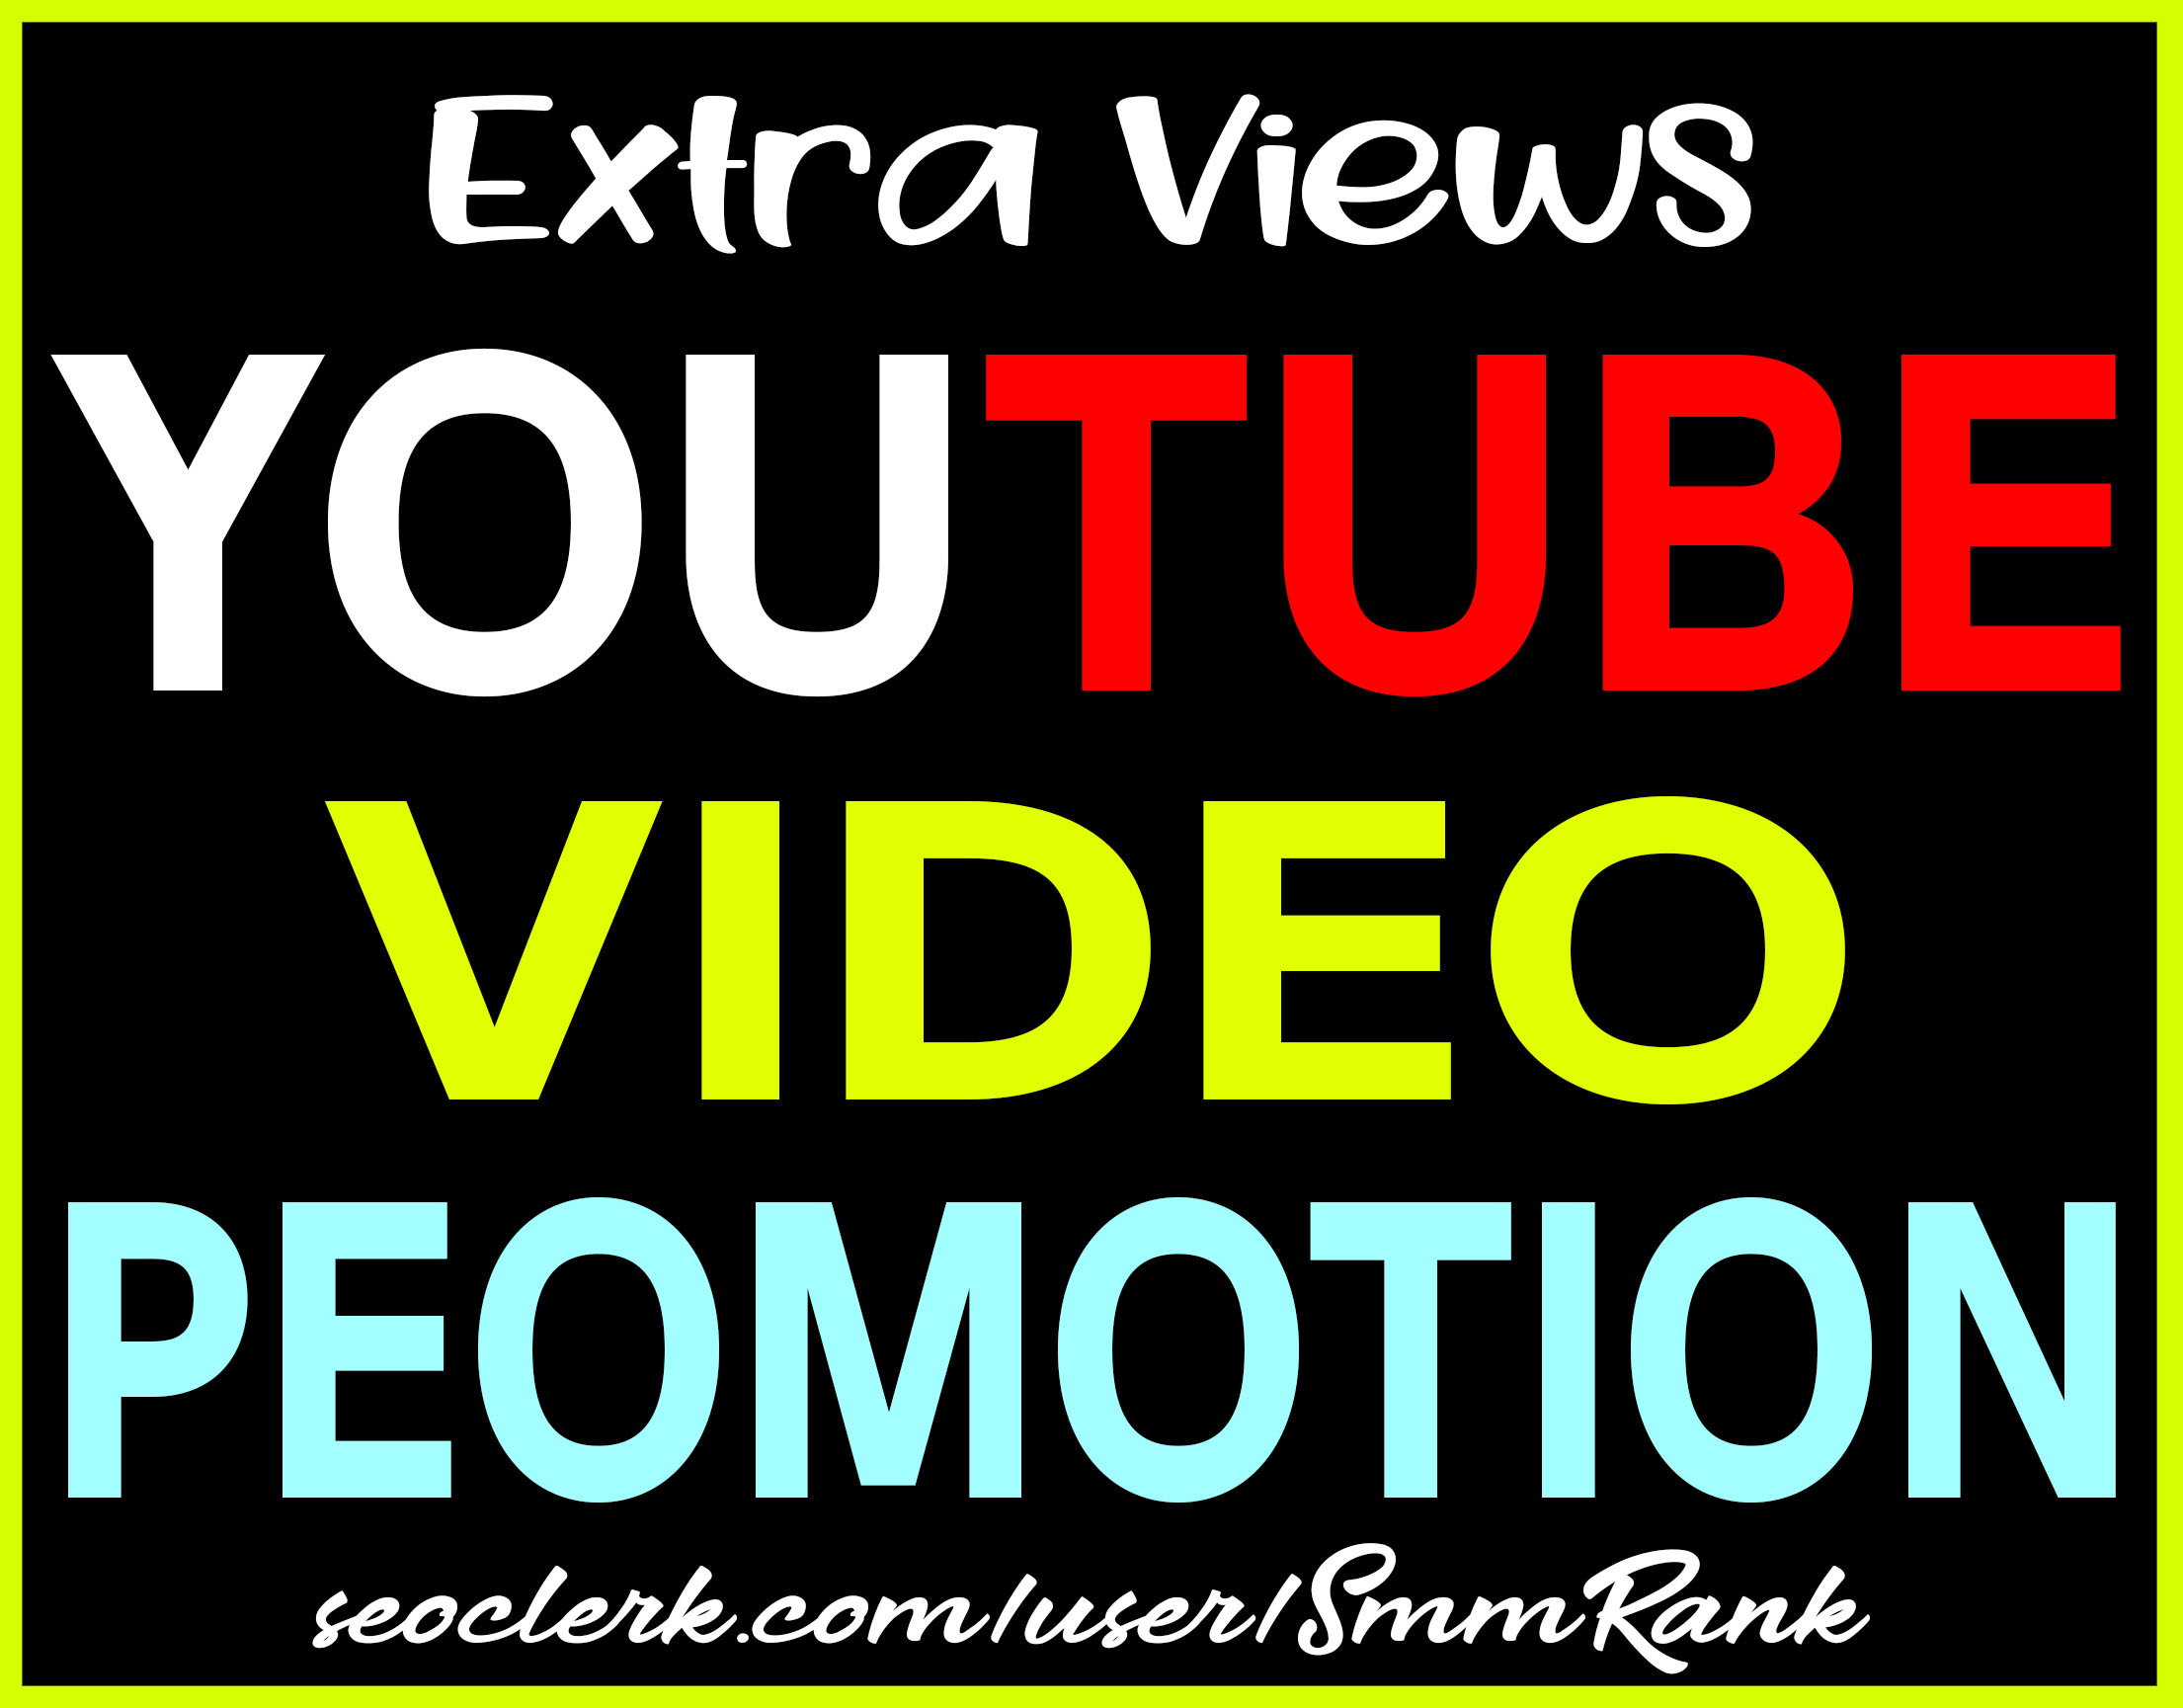 YouTube Video Promotion Marketing + Good For Ranking